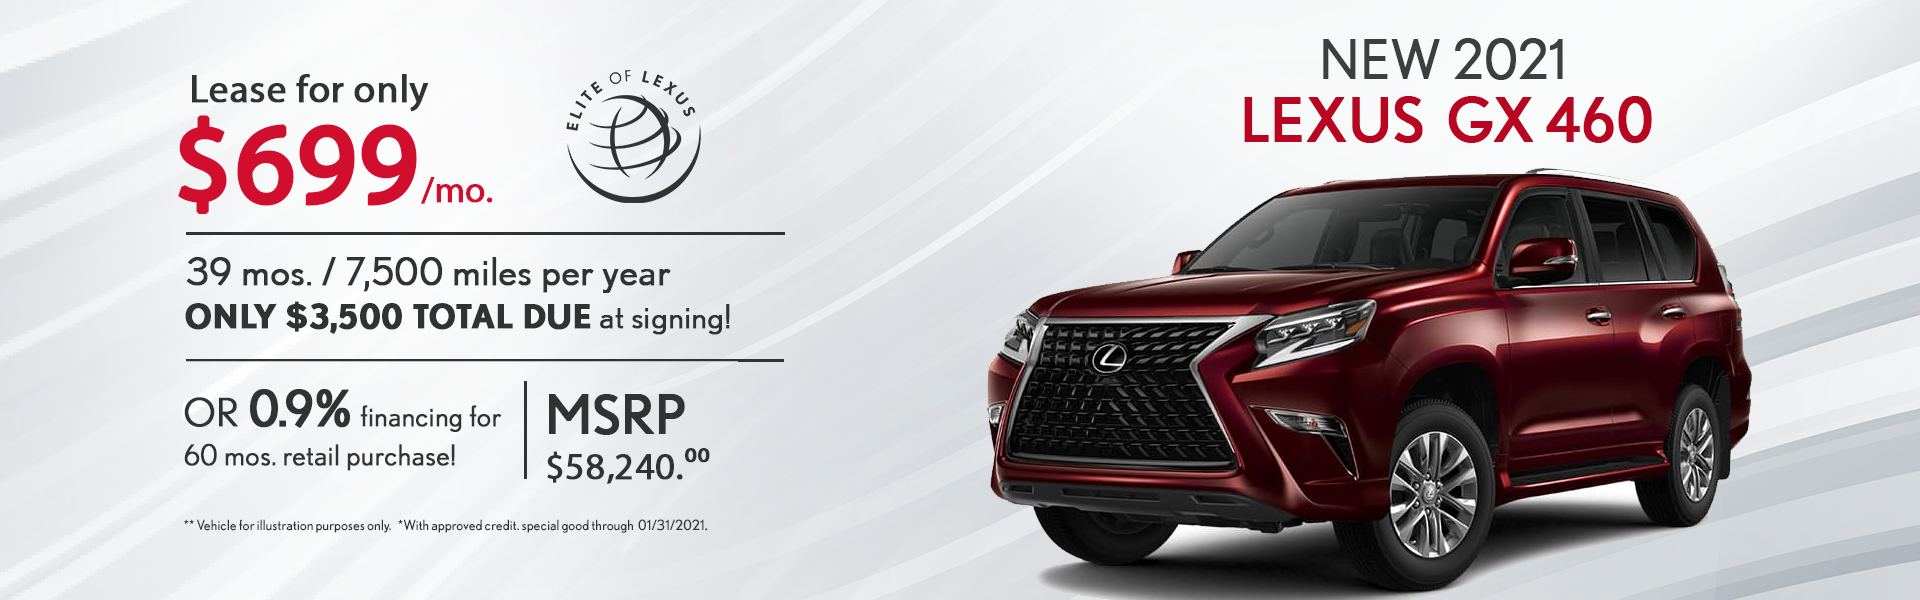 January Lexus Lease Specials GX 460